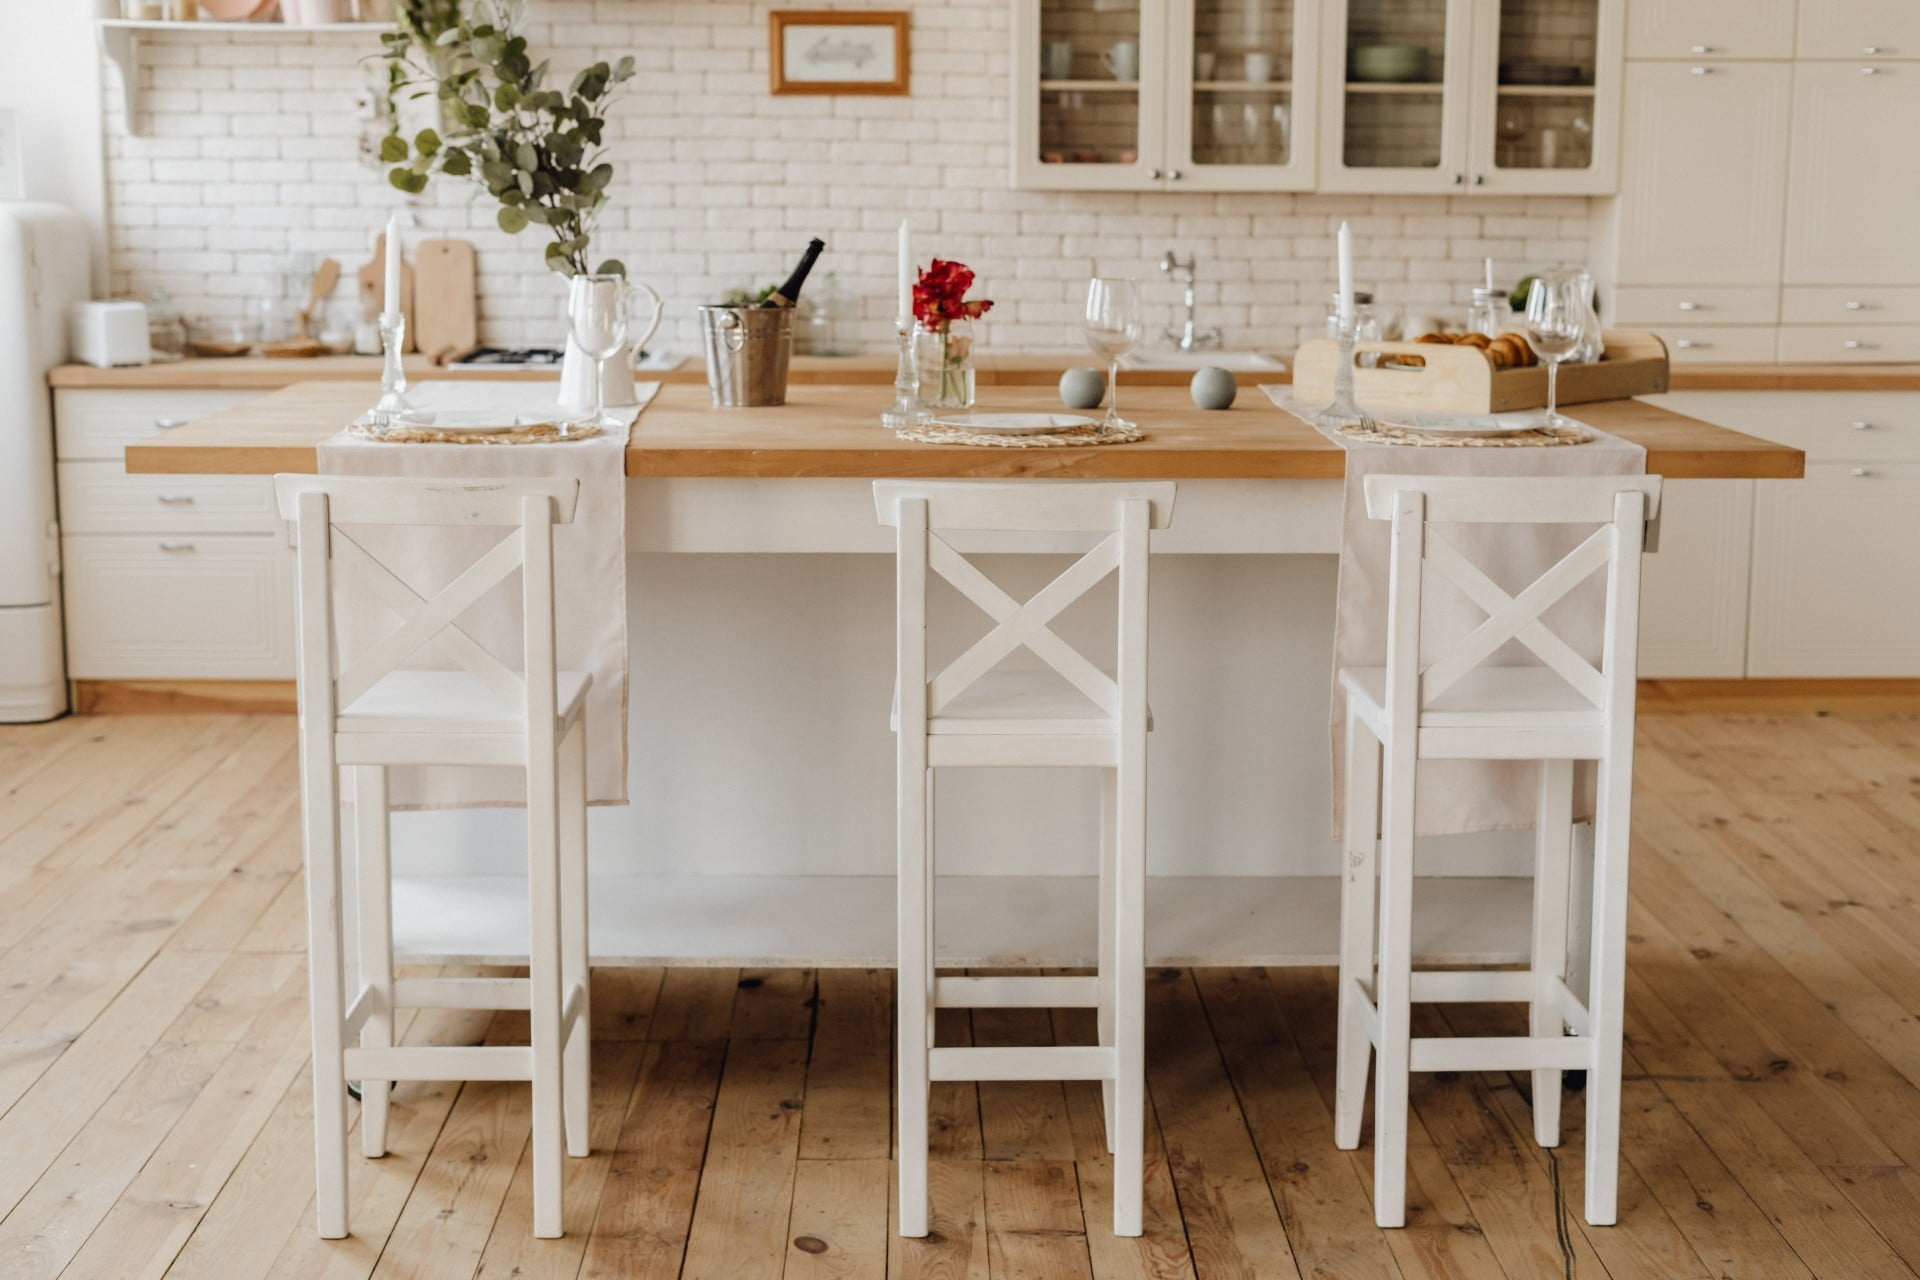 Great ready to order kitchen islands you'll love   21Oak